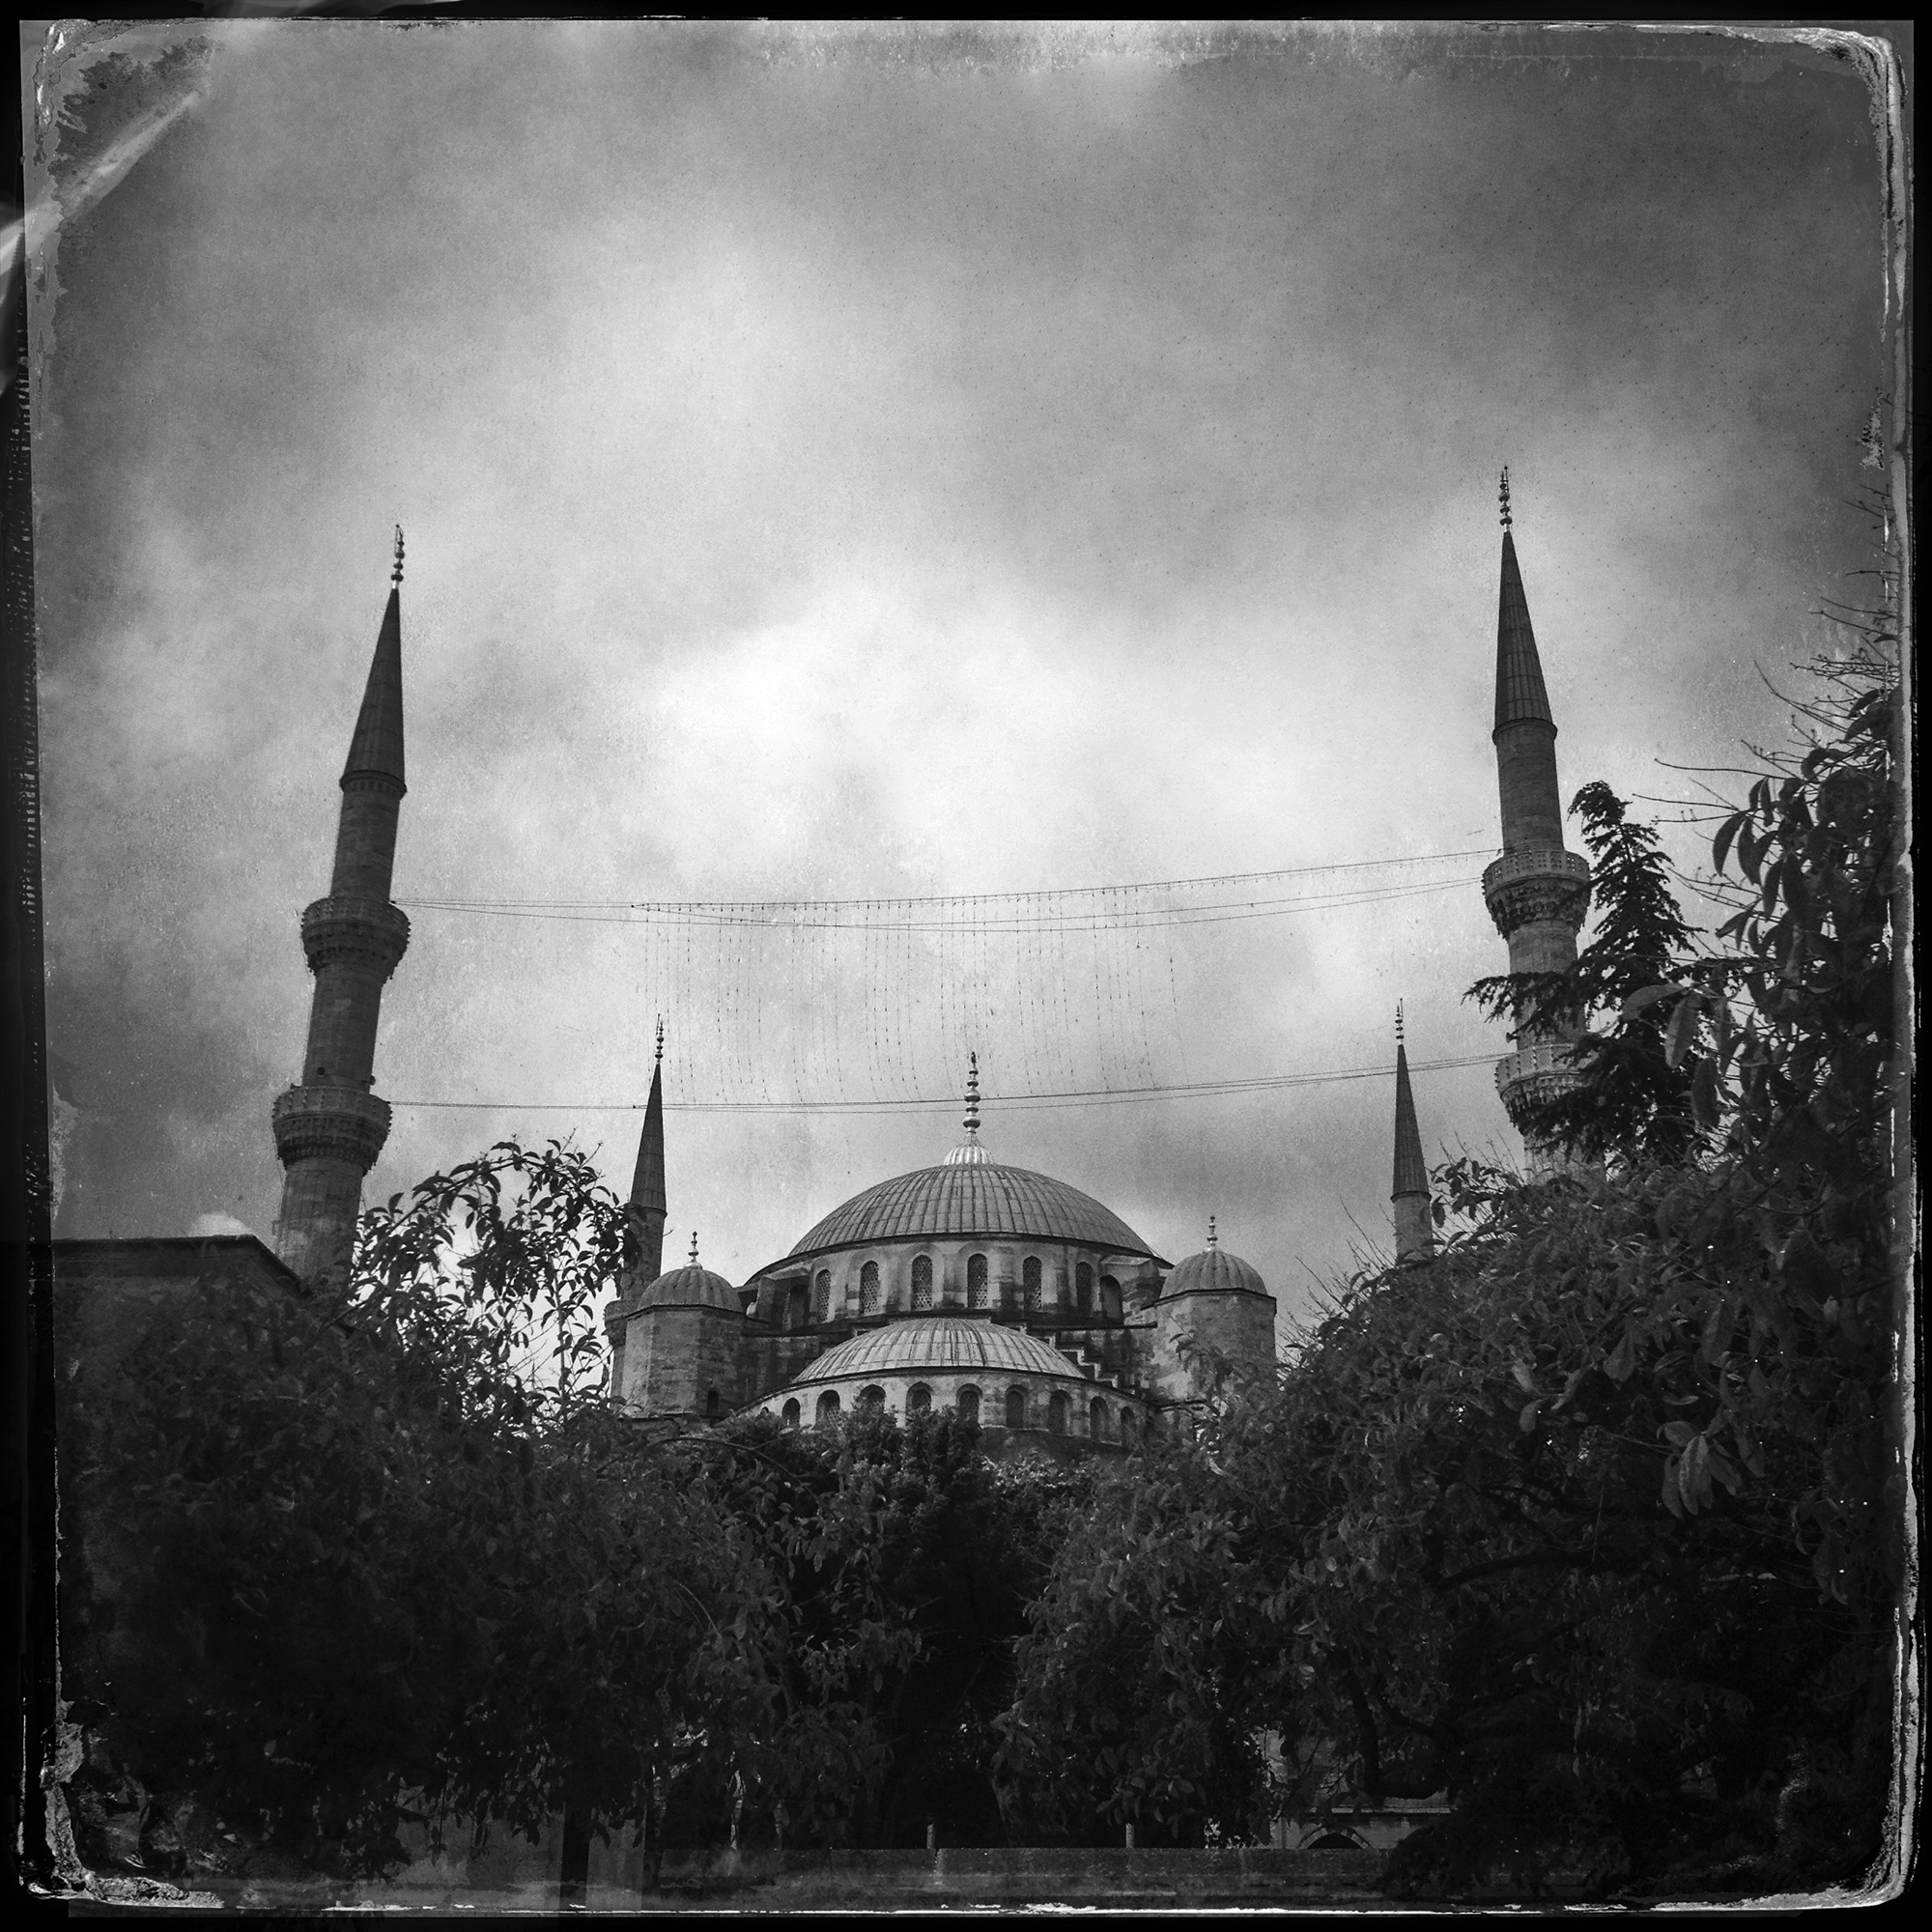 Sultan Ahmed Mosque (Blue Mosque), Istanbul, 2013